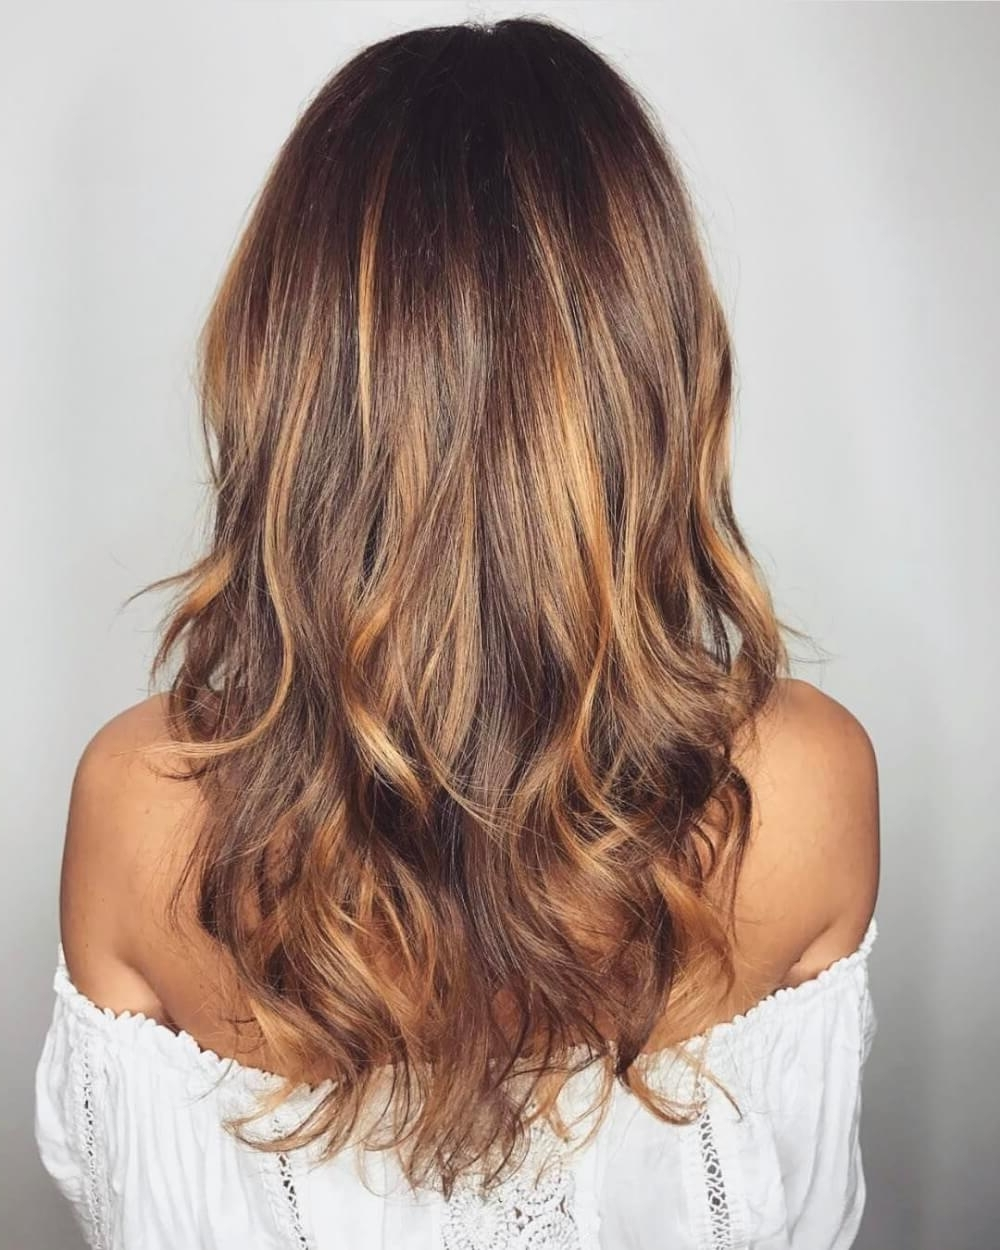 34 Light Brown Hair Colors That Are Blowing Up In 2018 Regarding 2017 Maple Bronde Hairstyles With Highlights (View 4 of 20)